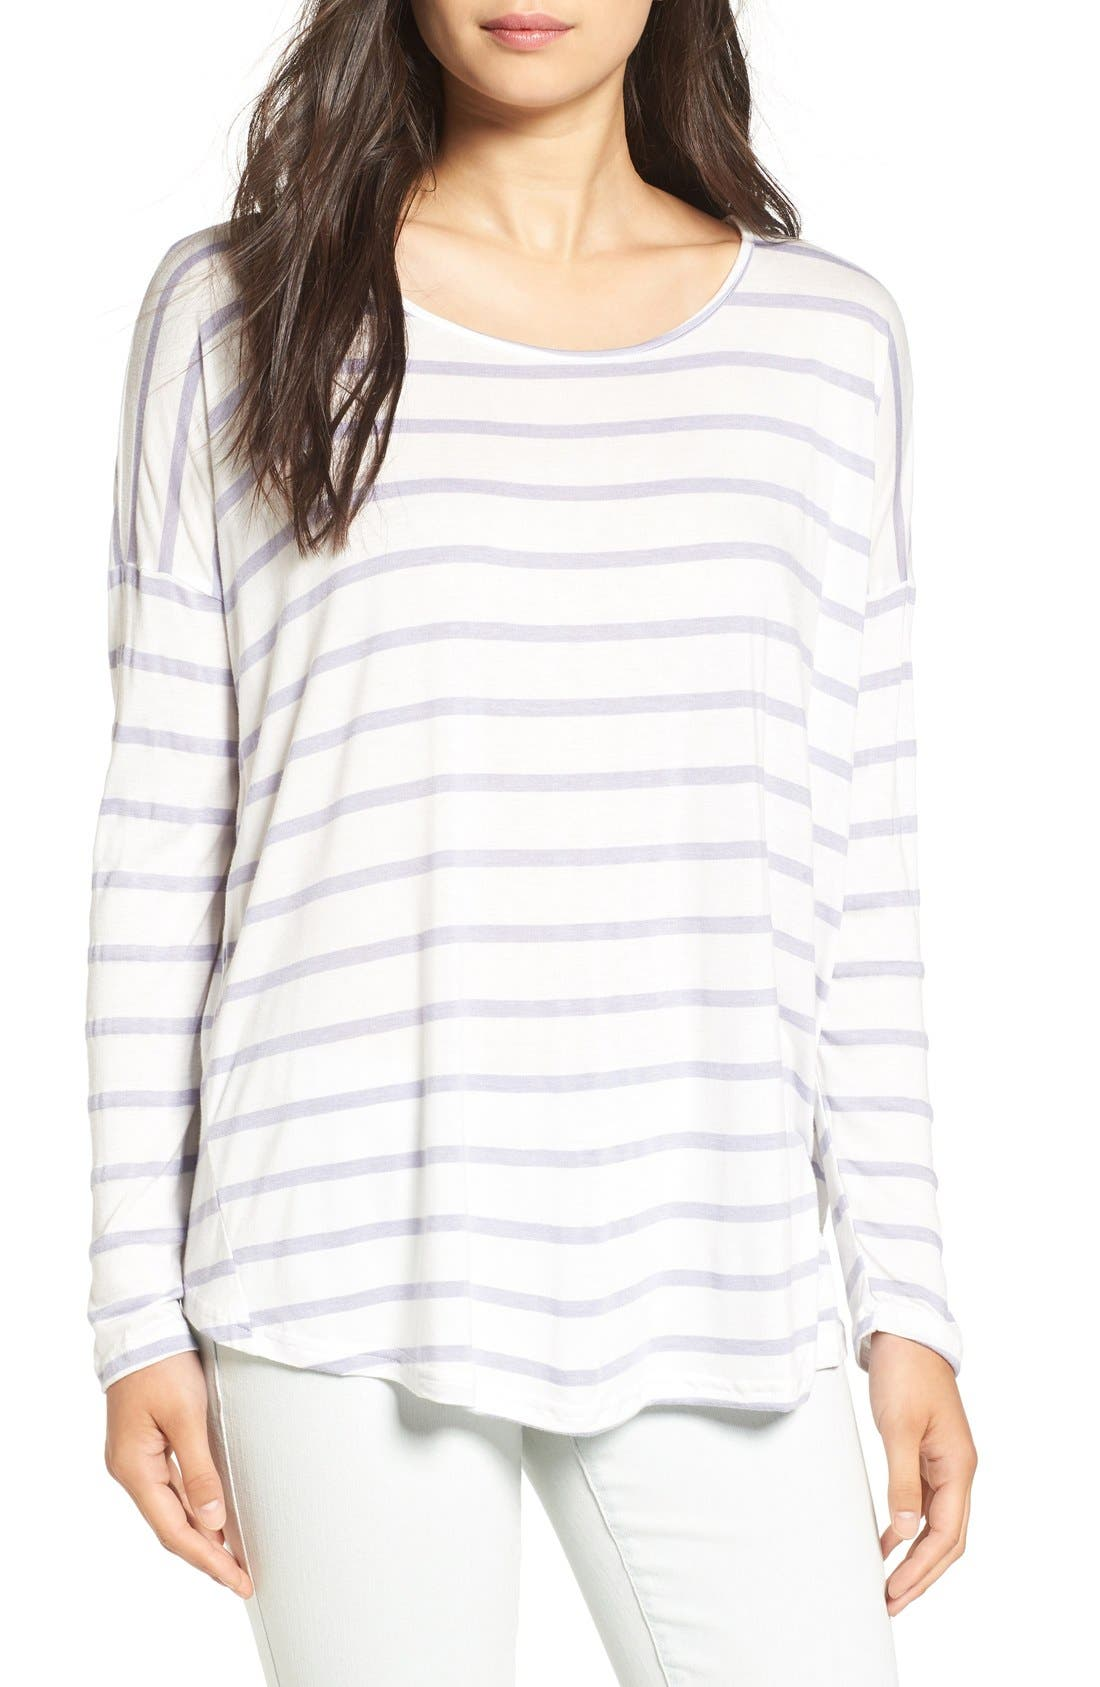 Main Image - Billabong 'Change the World' Stripe Long Sleeve Tee